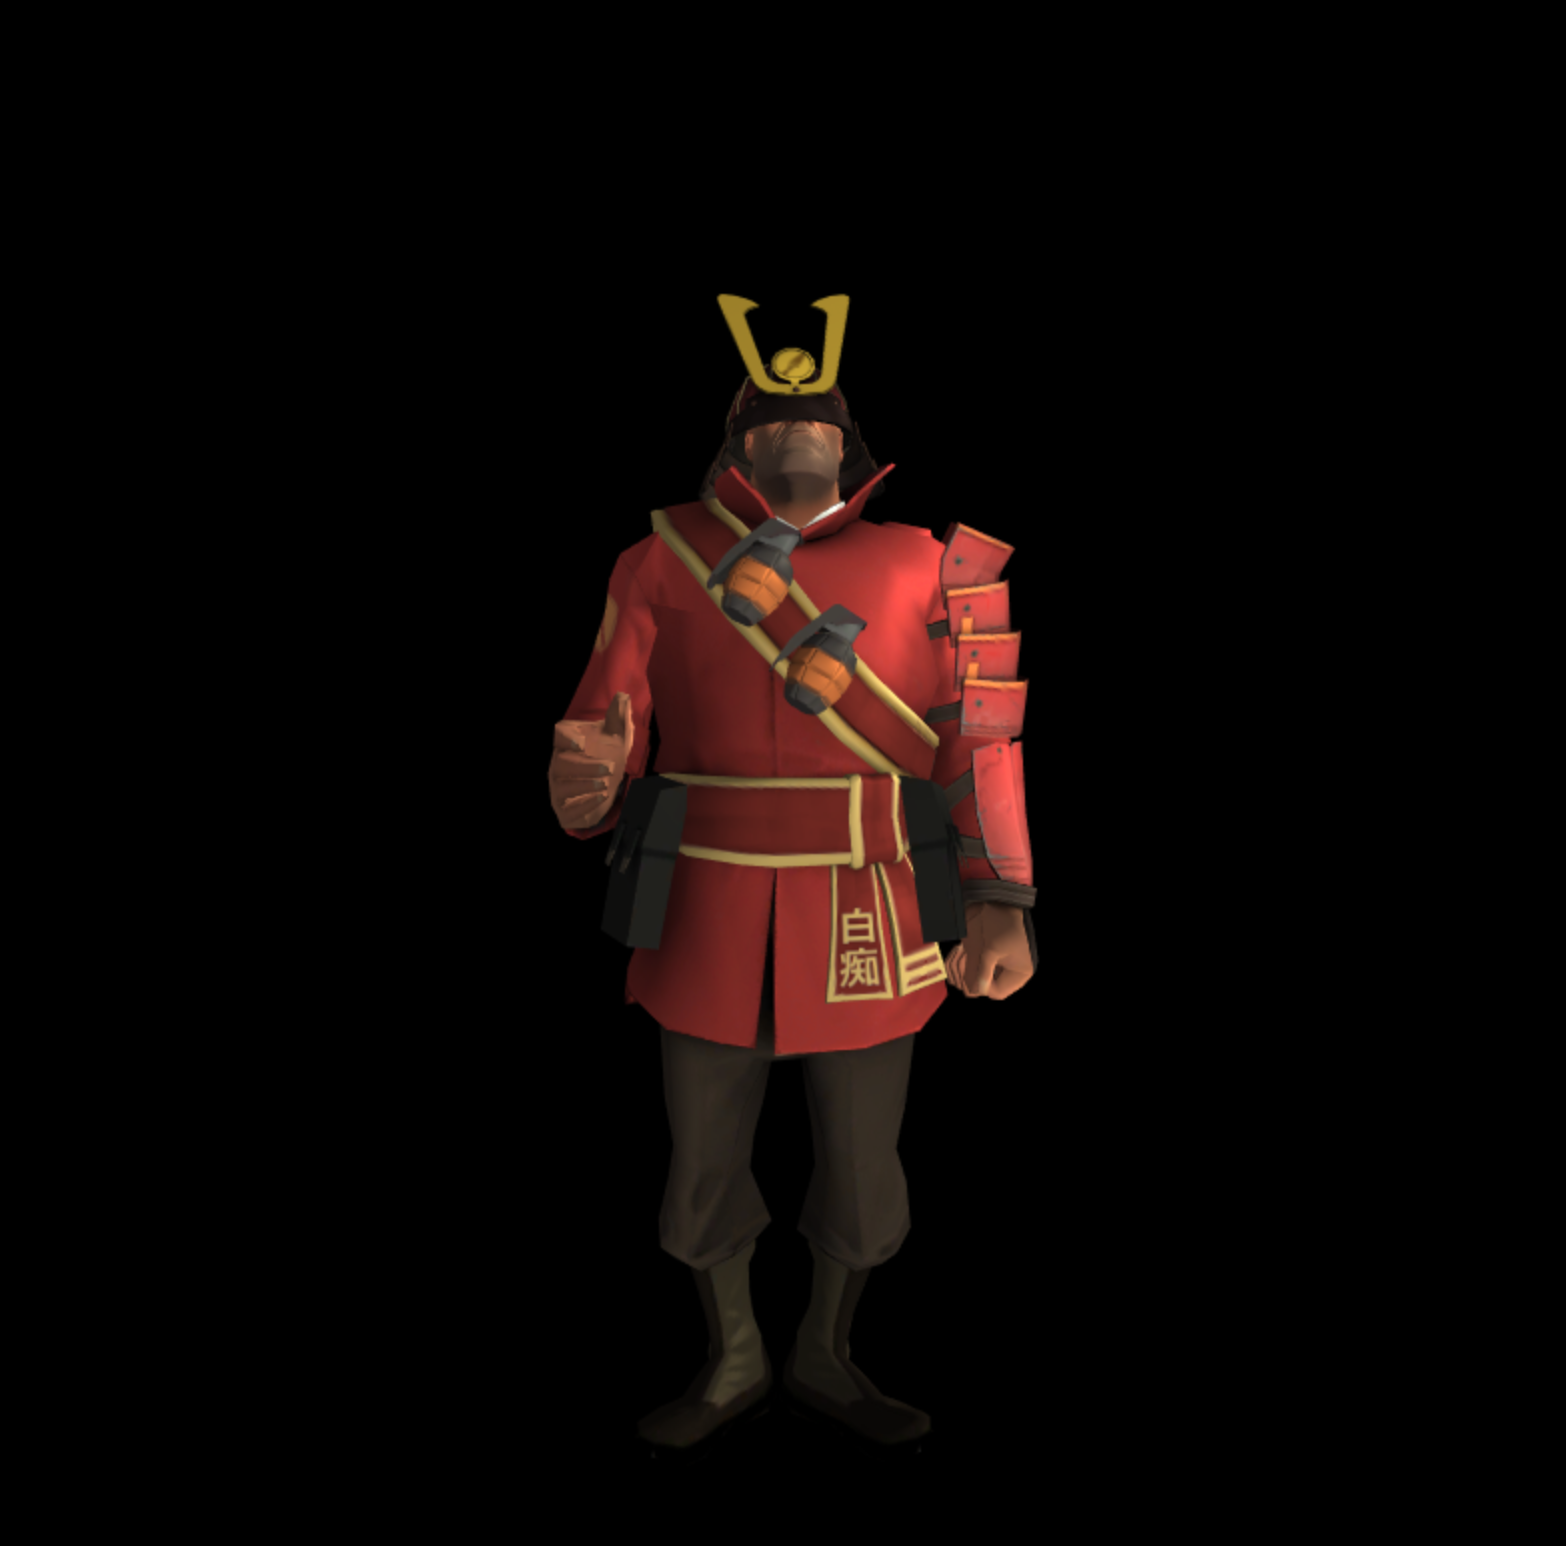 How to get free tf2 item the dread hiding hood - Do You Really Want A Soldier To Look Like The One On The Top Or The One On The Bottom